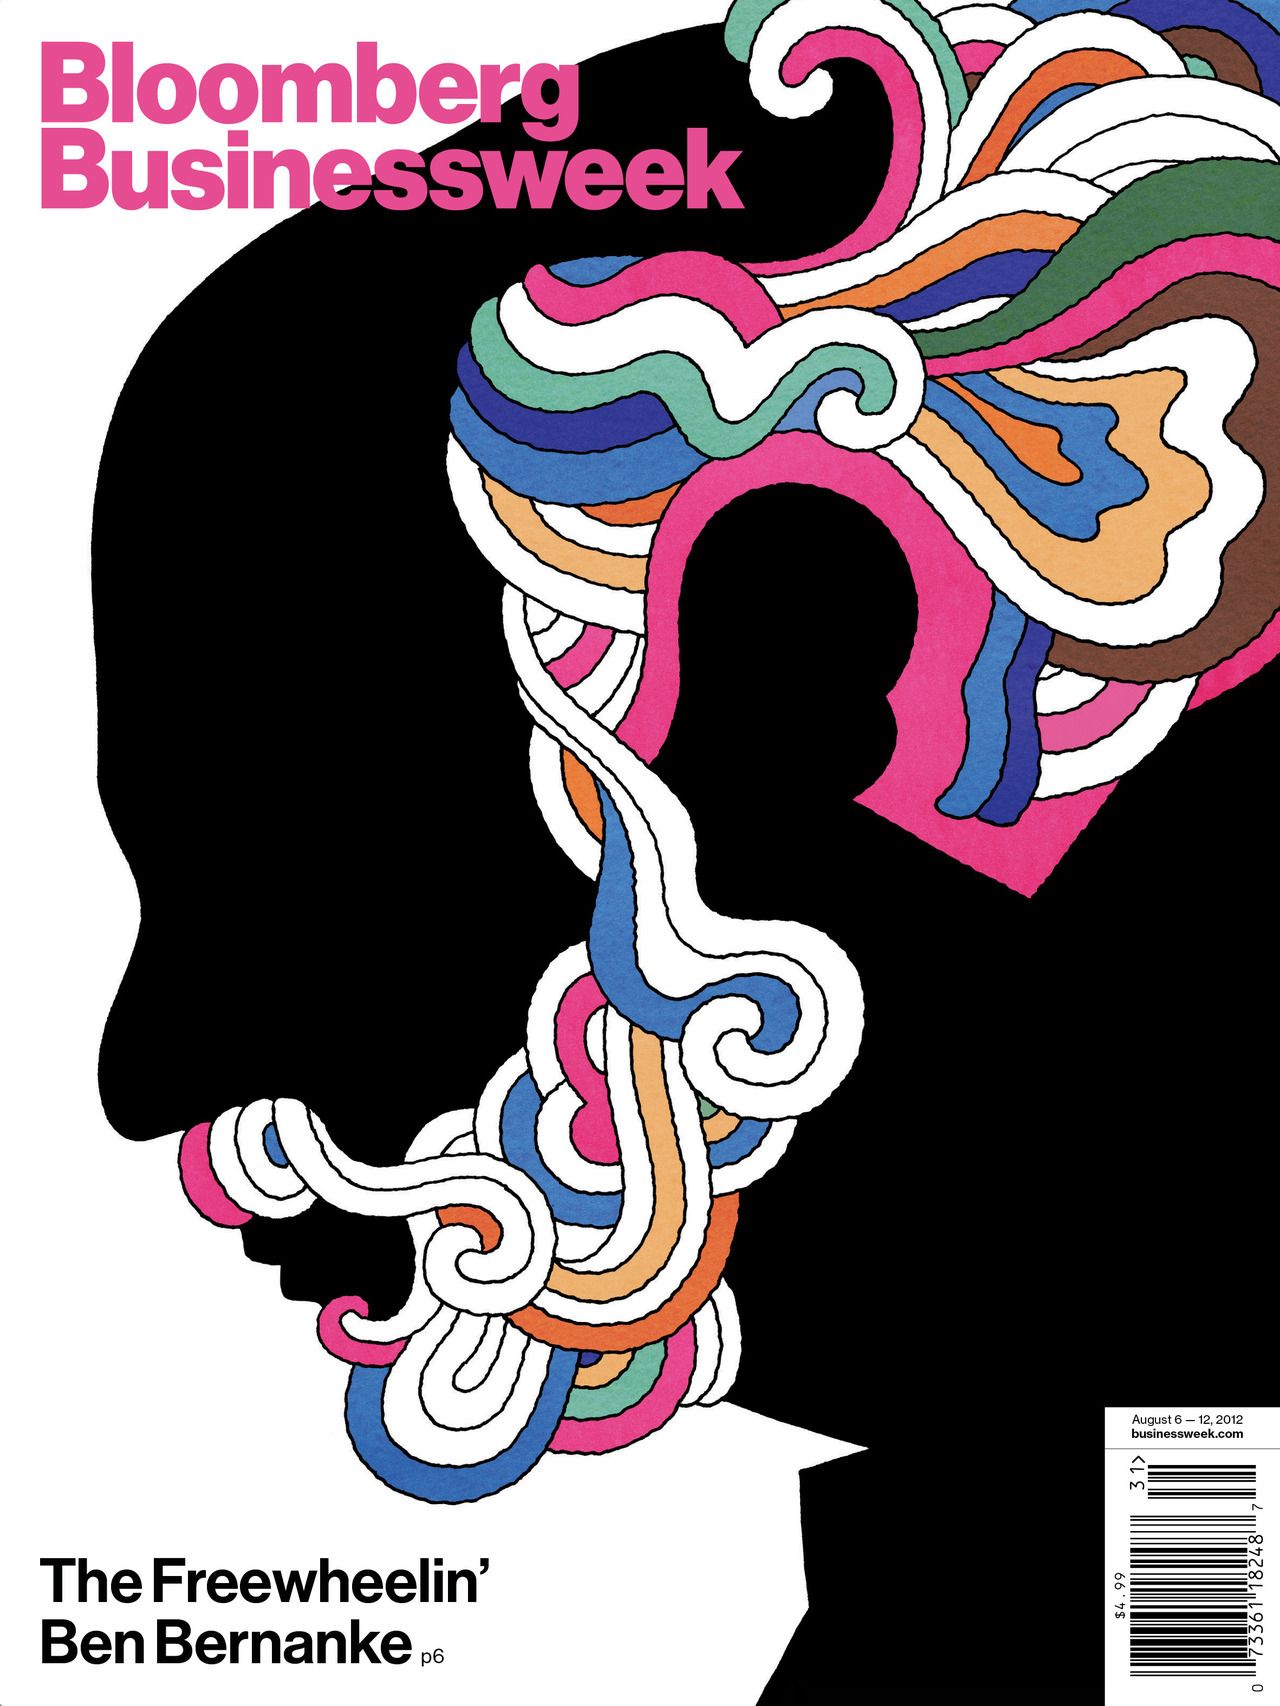 The Freewheelin' Ben Bernanke Illustration by David Parkins. (With apologies to Milton Glaser)